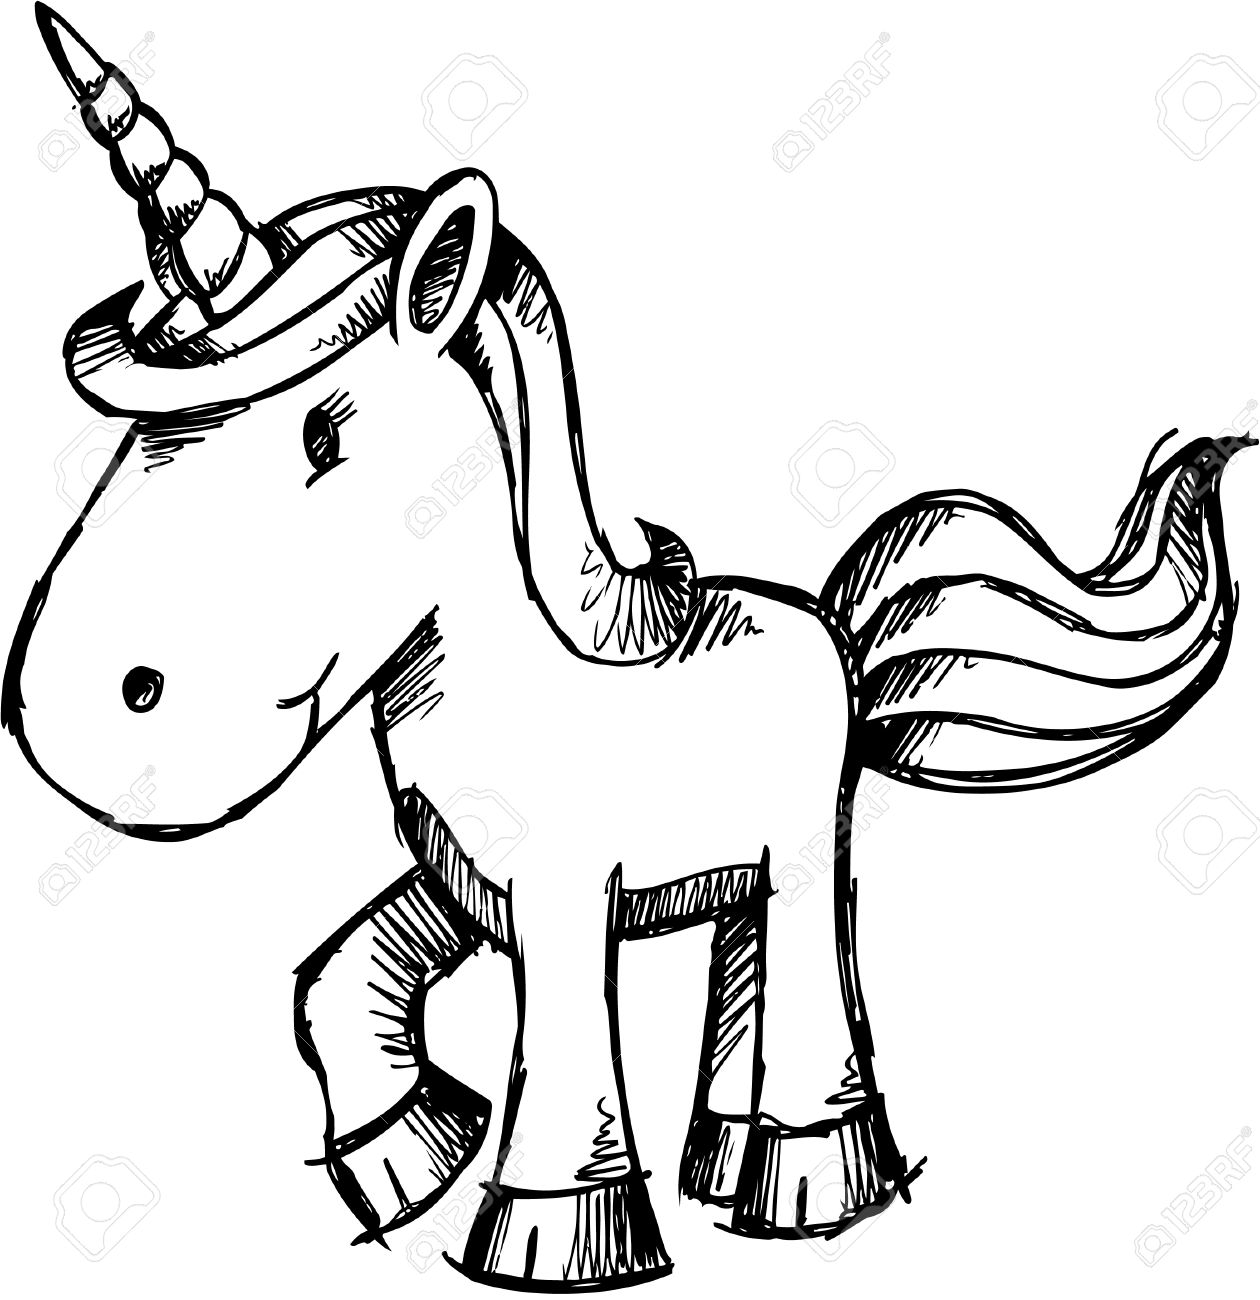 Doodle Sketchy Unicorn Stock Vector - 6774842